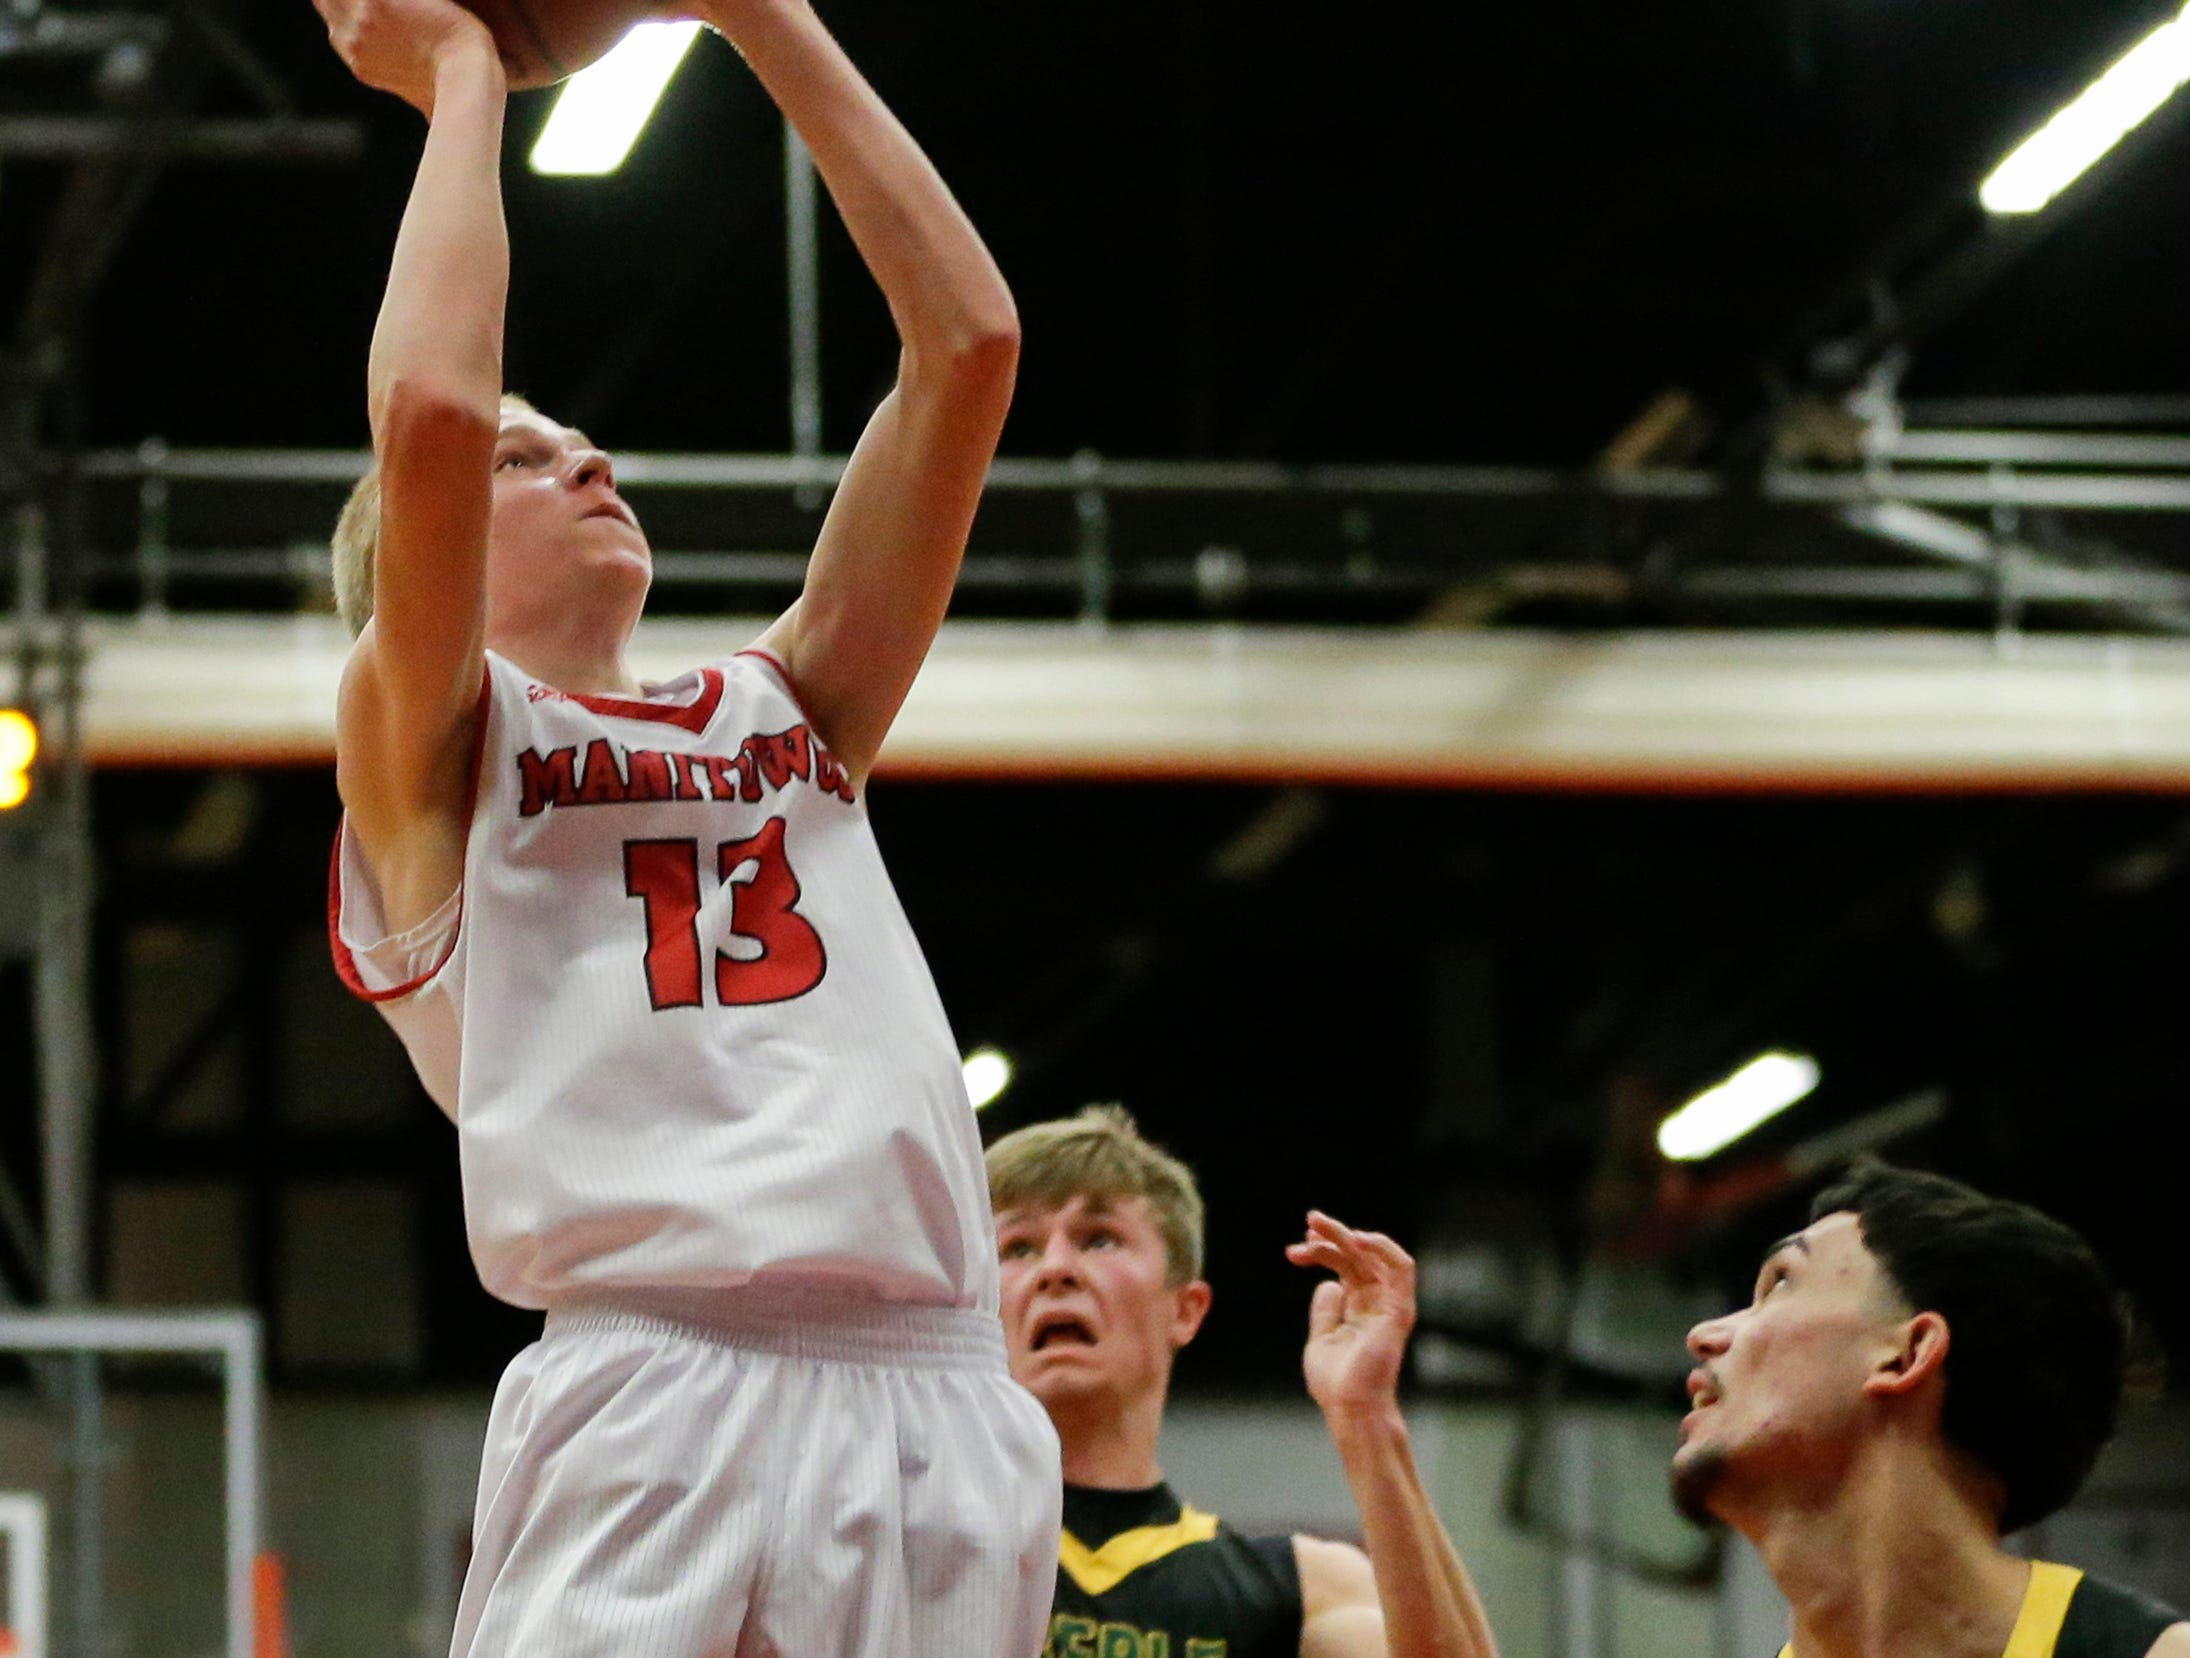 Manitowoc Lincoln's Sam Jacobson shoots against Green Bay Preble during boys FRCC basketball at Manitowoc Lincoln High School Friday, December 21, 2018, in Manitowoc, Wis. Joshua Clark/USA TODAY NETWORK-Wisconsin